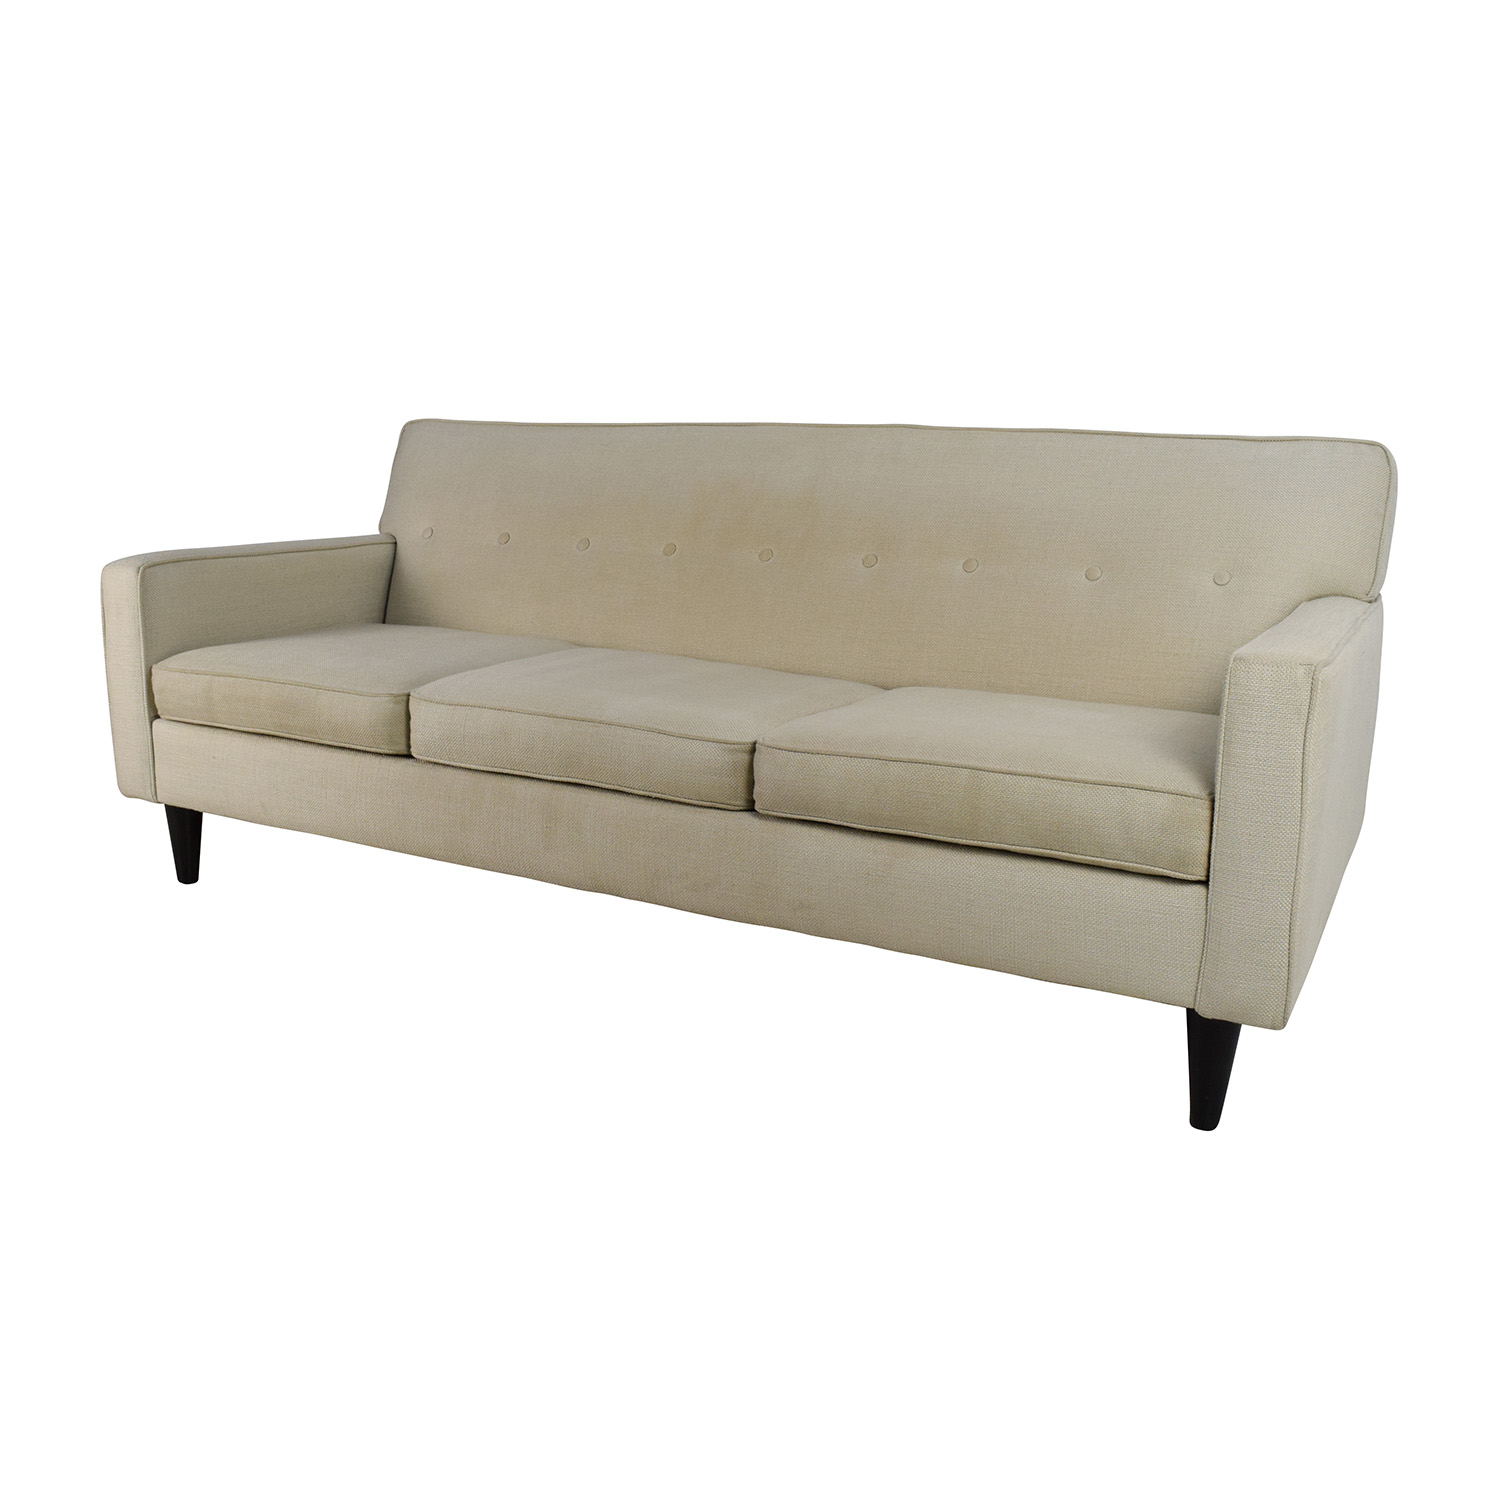 Max home sofa 60 off mitc gold bob williams thesofa for Home furniture